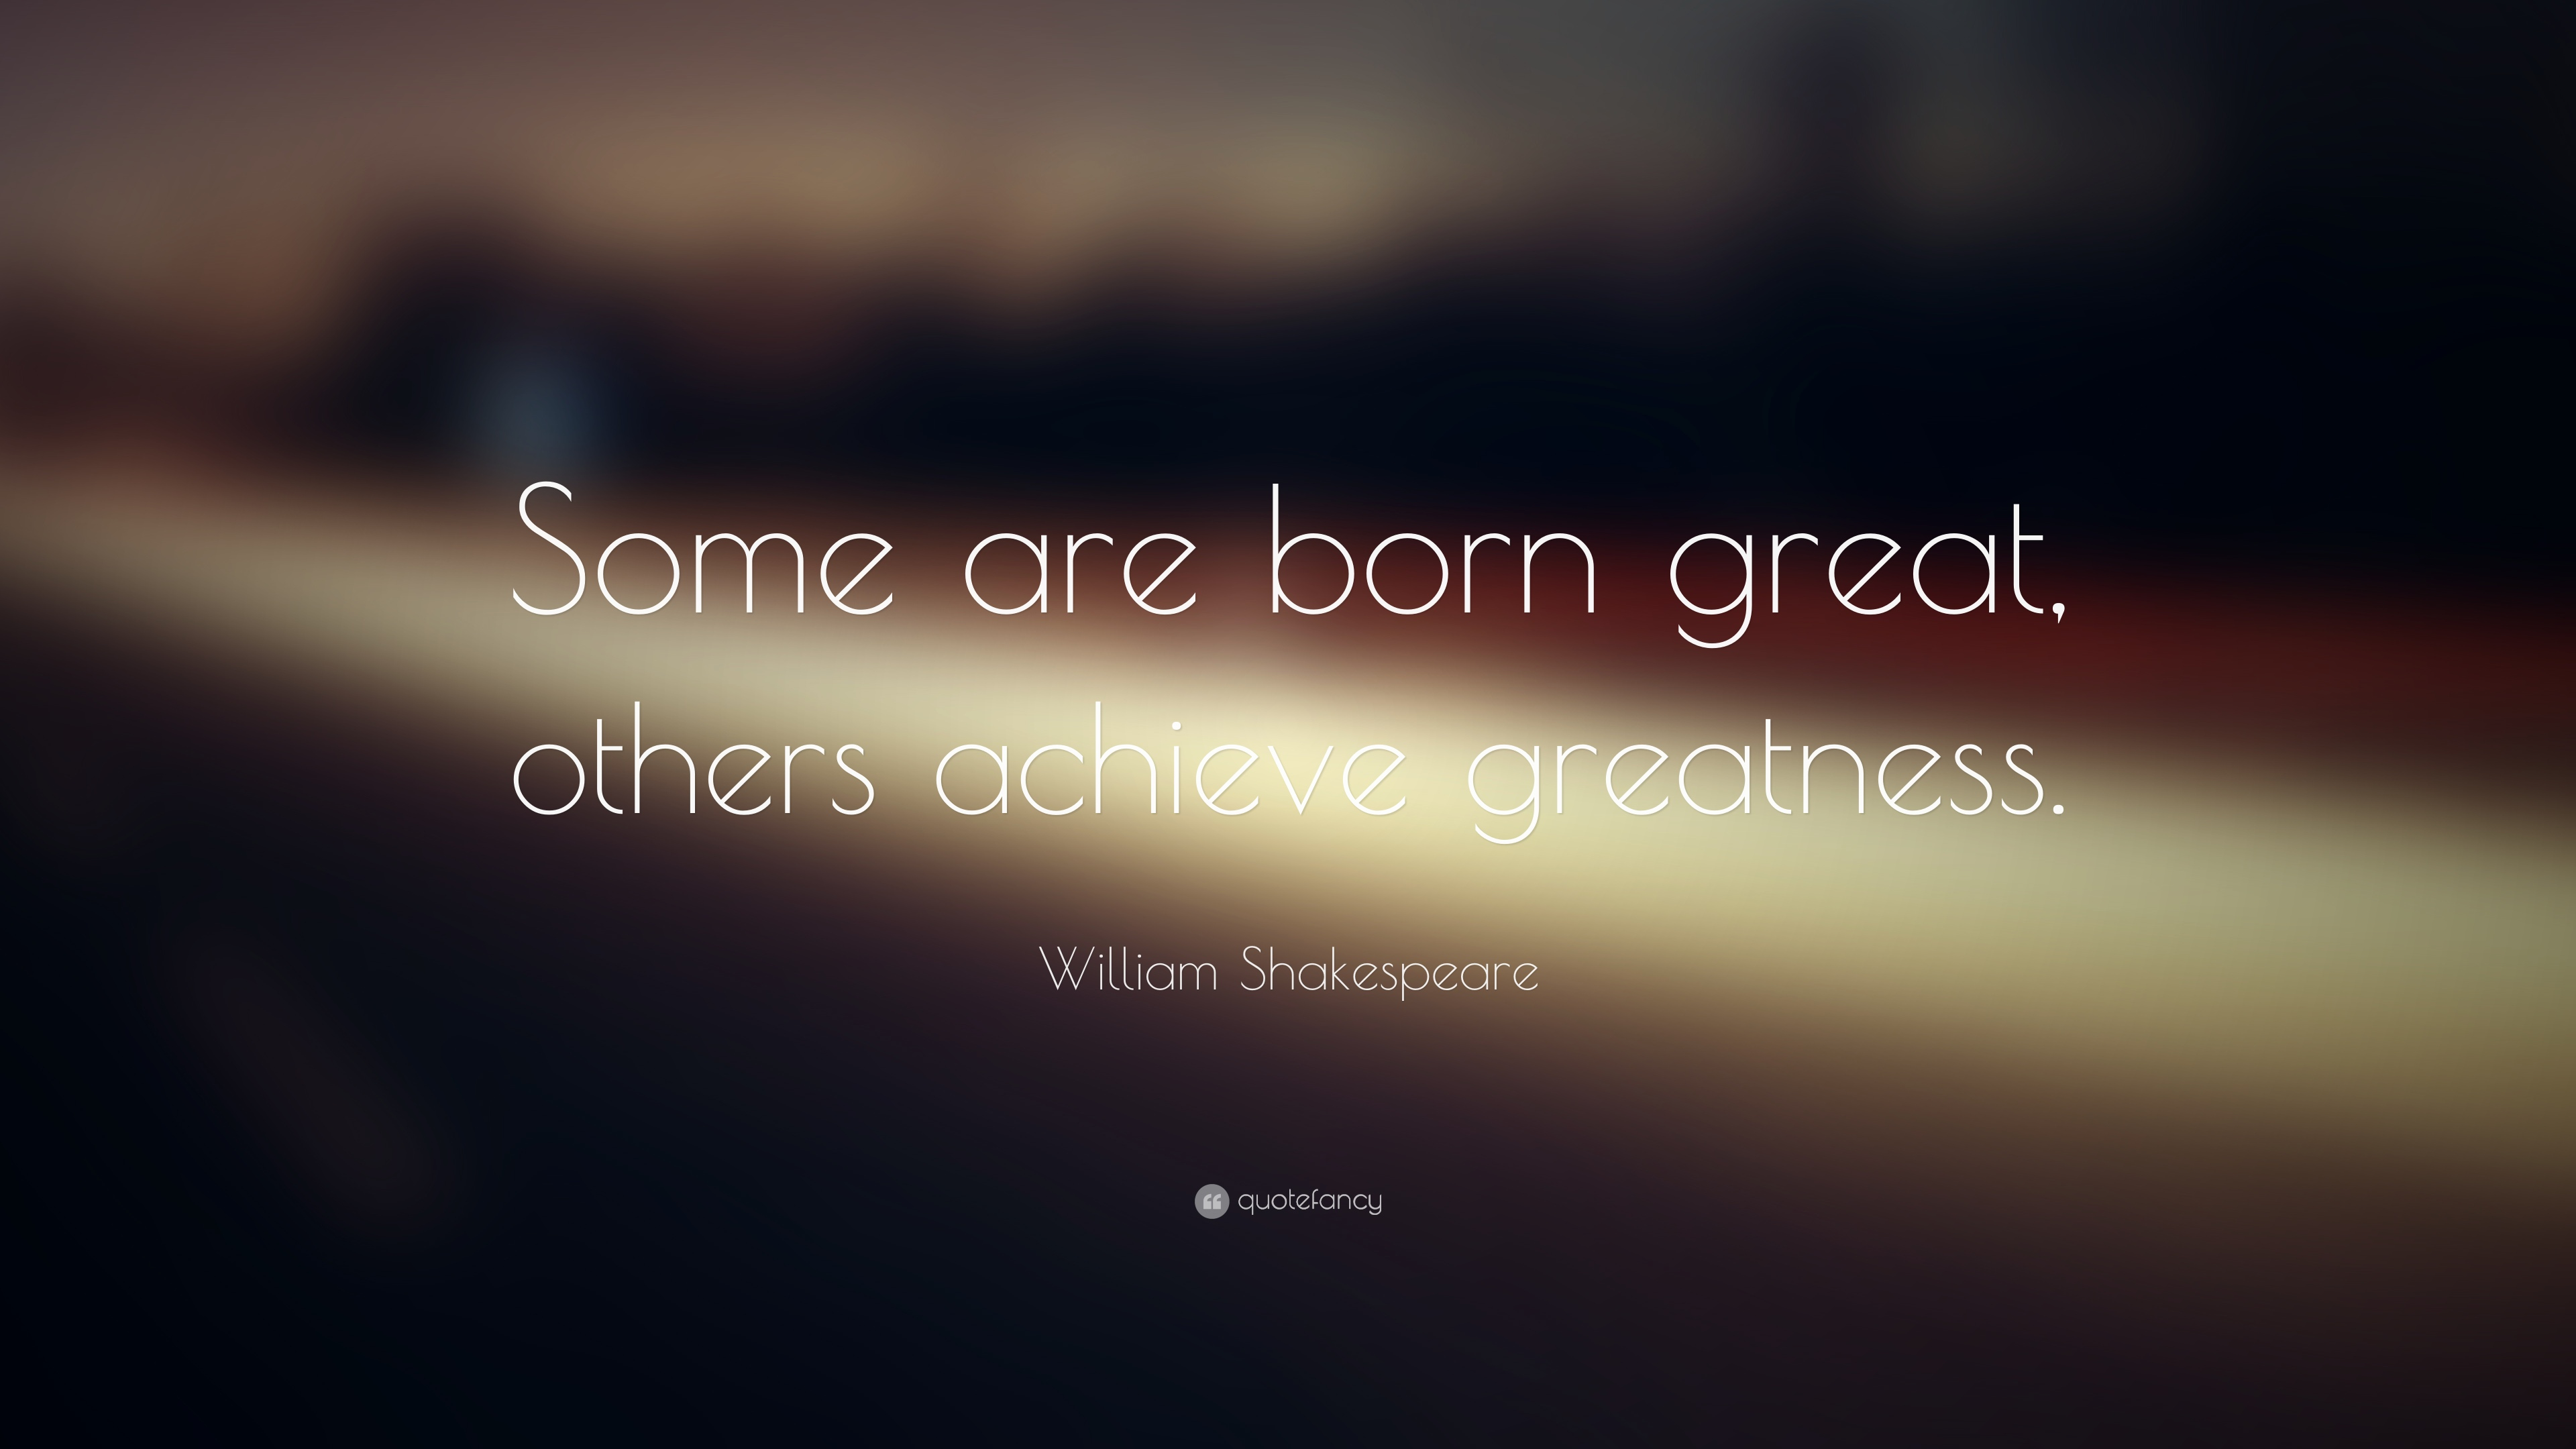 Shakespeare Love Quotes Wallpaper : William Shakespeare Quote: ?Some are born great, others achieve greatness.? (28 wallpapers ...